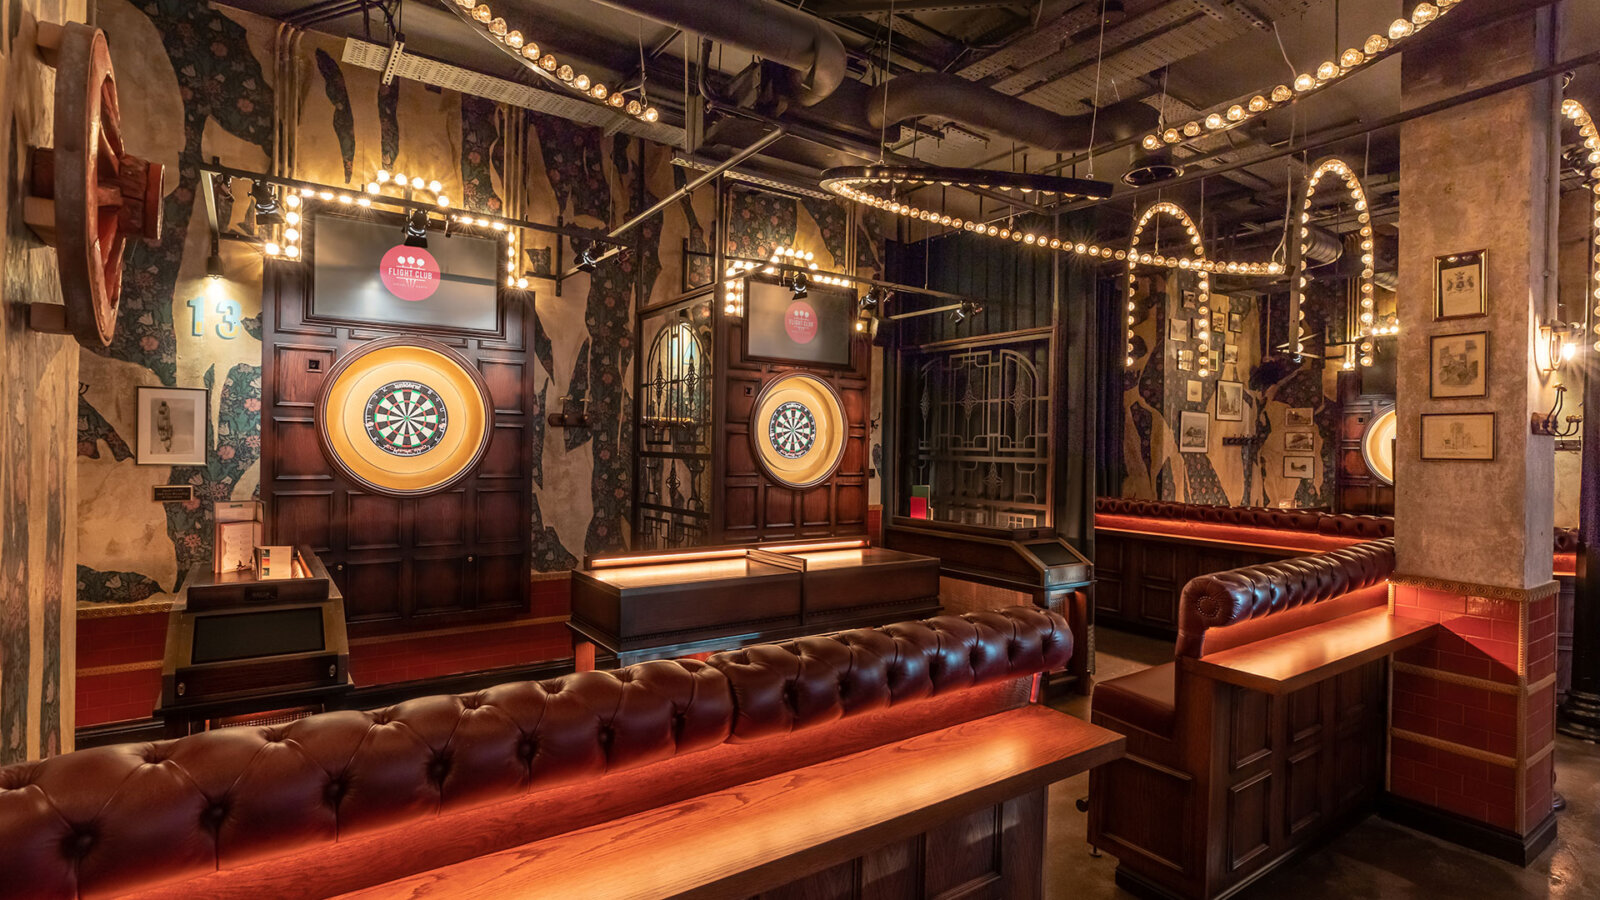 This is what a night in Flight Club Manchester will be like when it reopens on August 1, The Manc